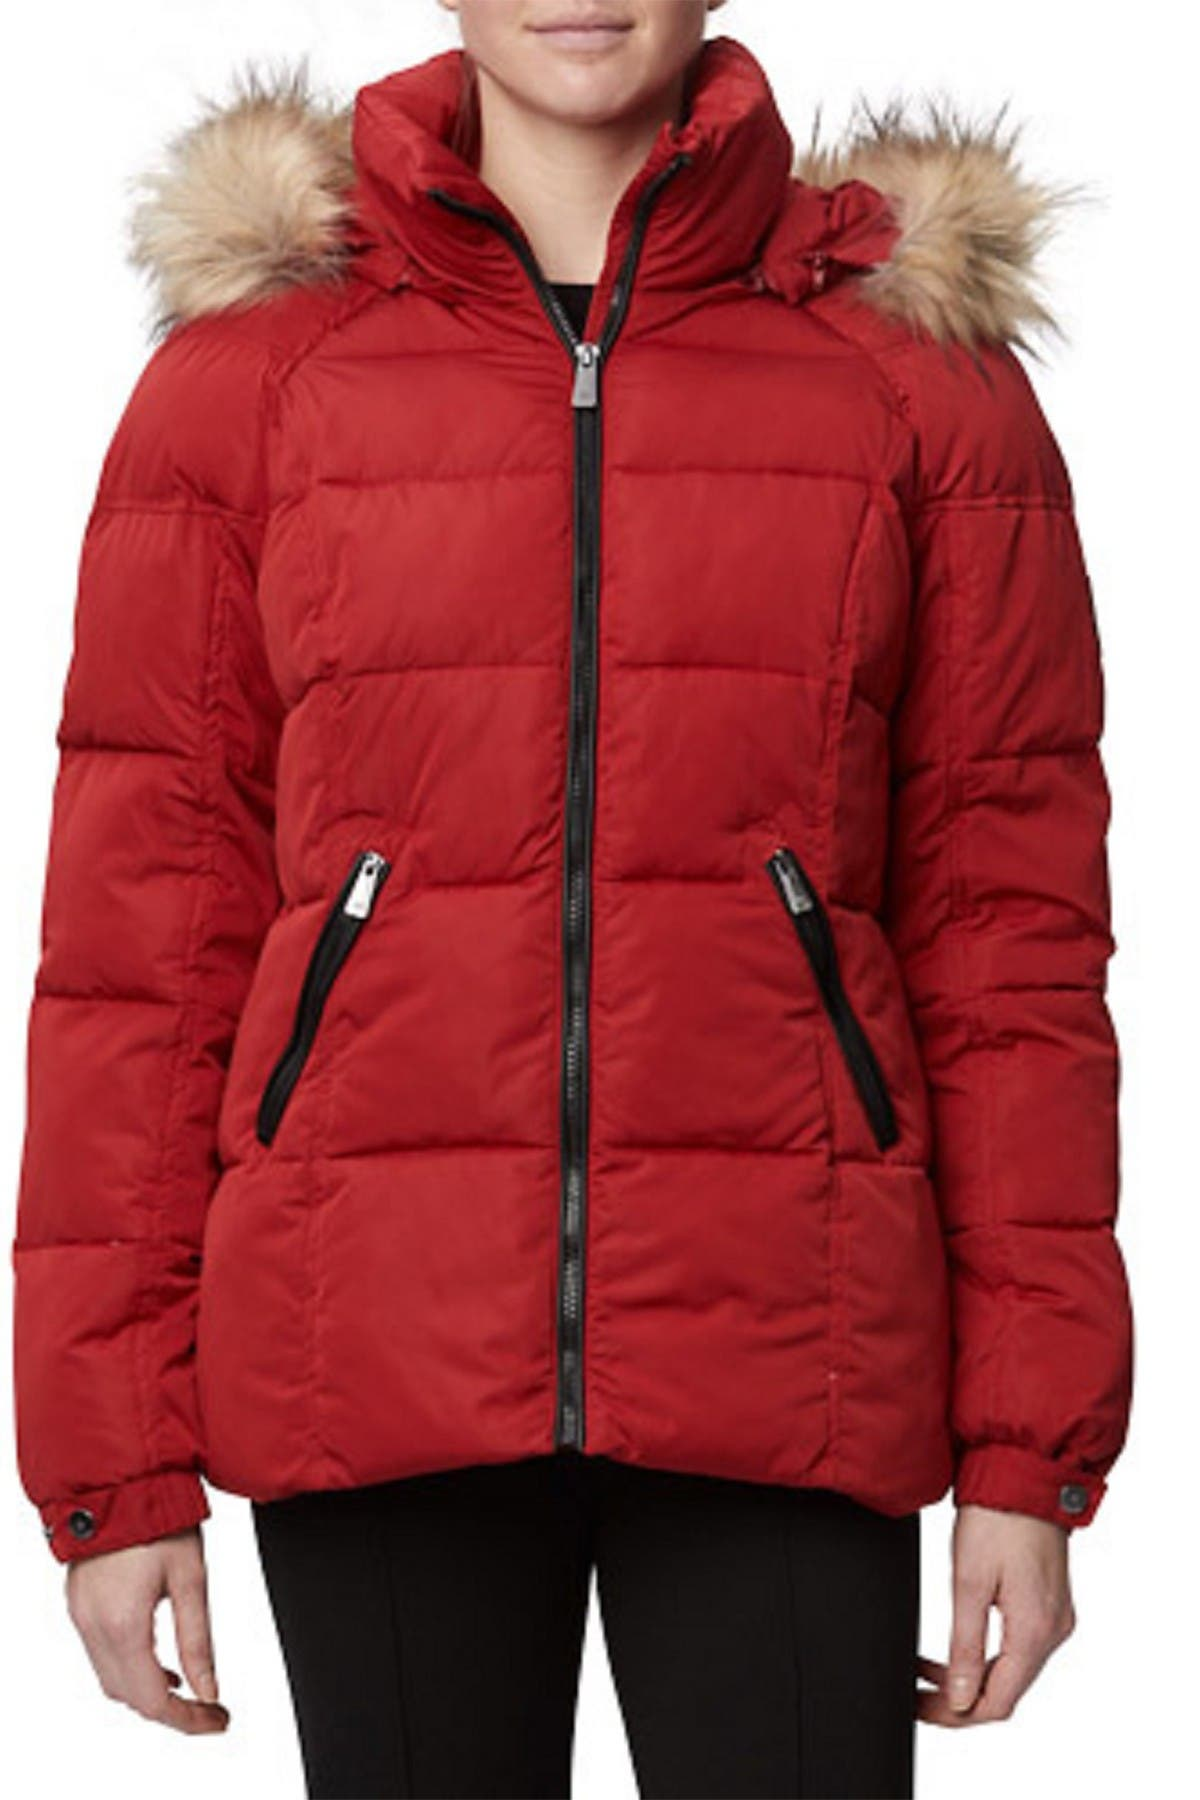 Image of Rainforest Horizontal Quilted Faux Fur Trim Thermoluxe Jacket